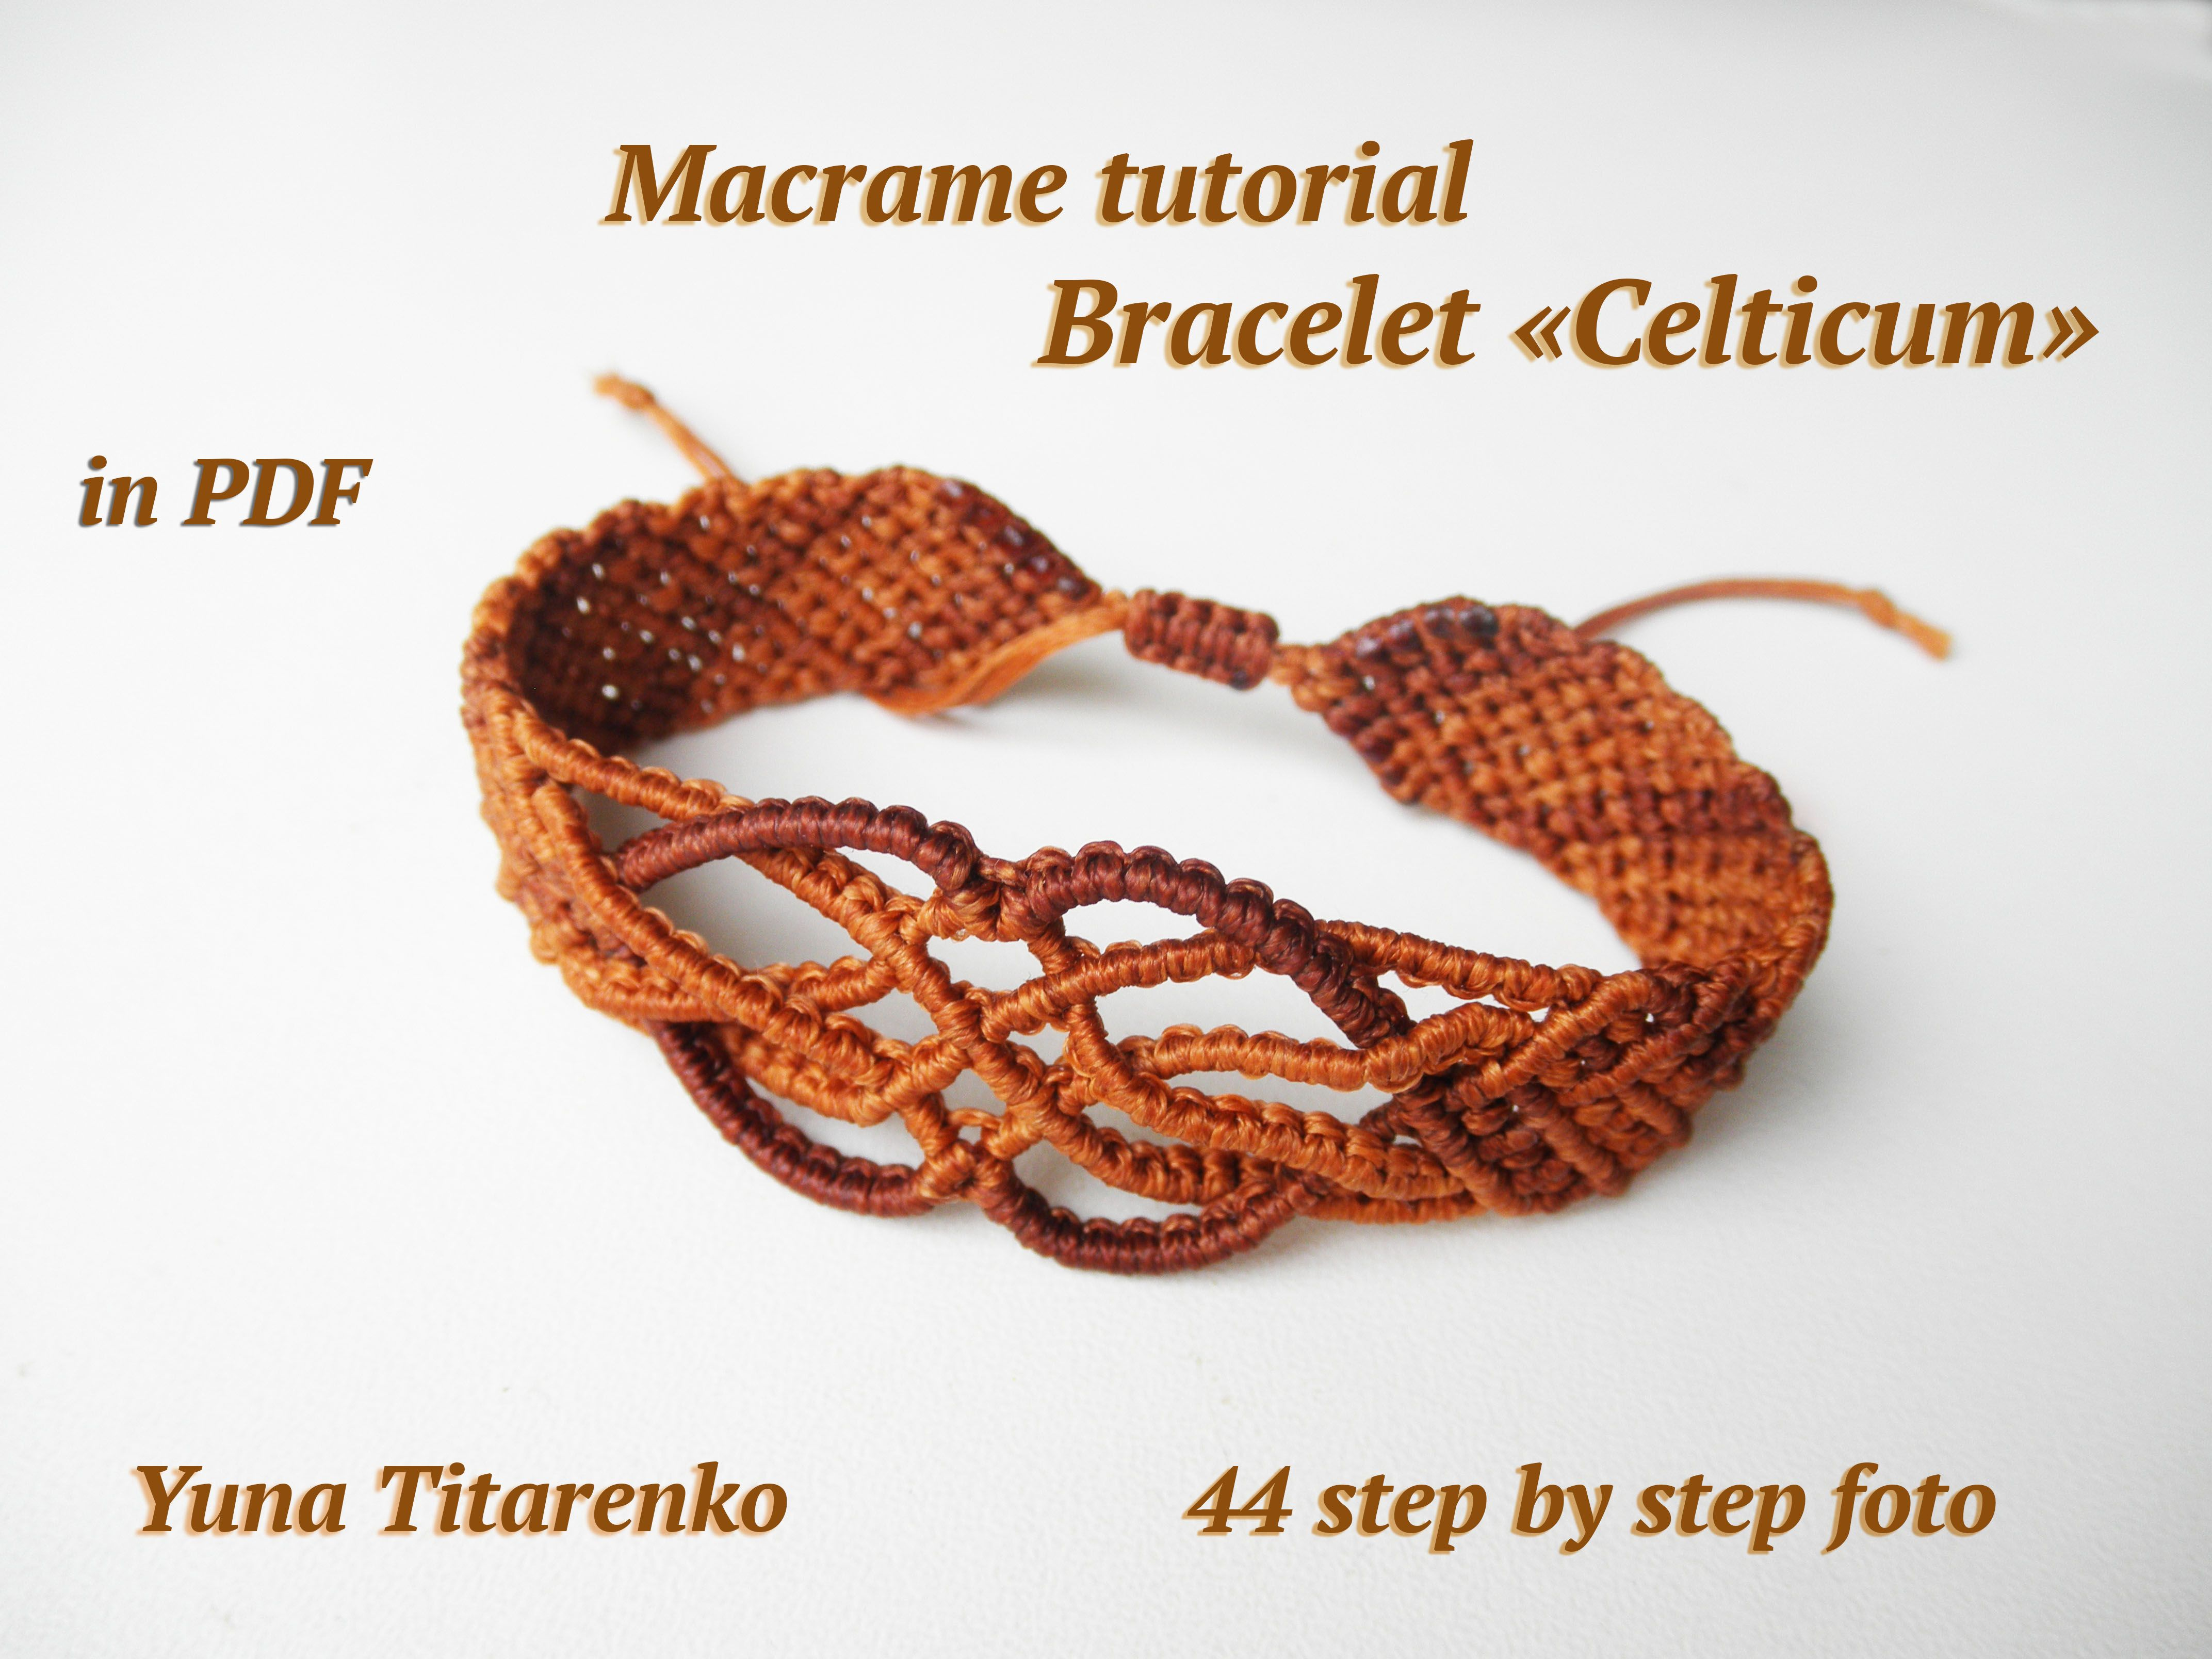 macrame tutorial bracelet celticum pinteres. Black Bedroom Furniture Sets. Home Design Ideas